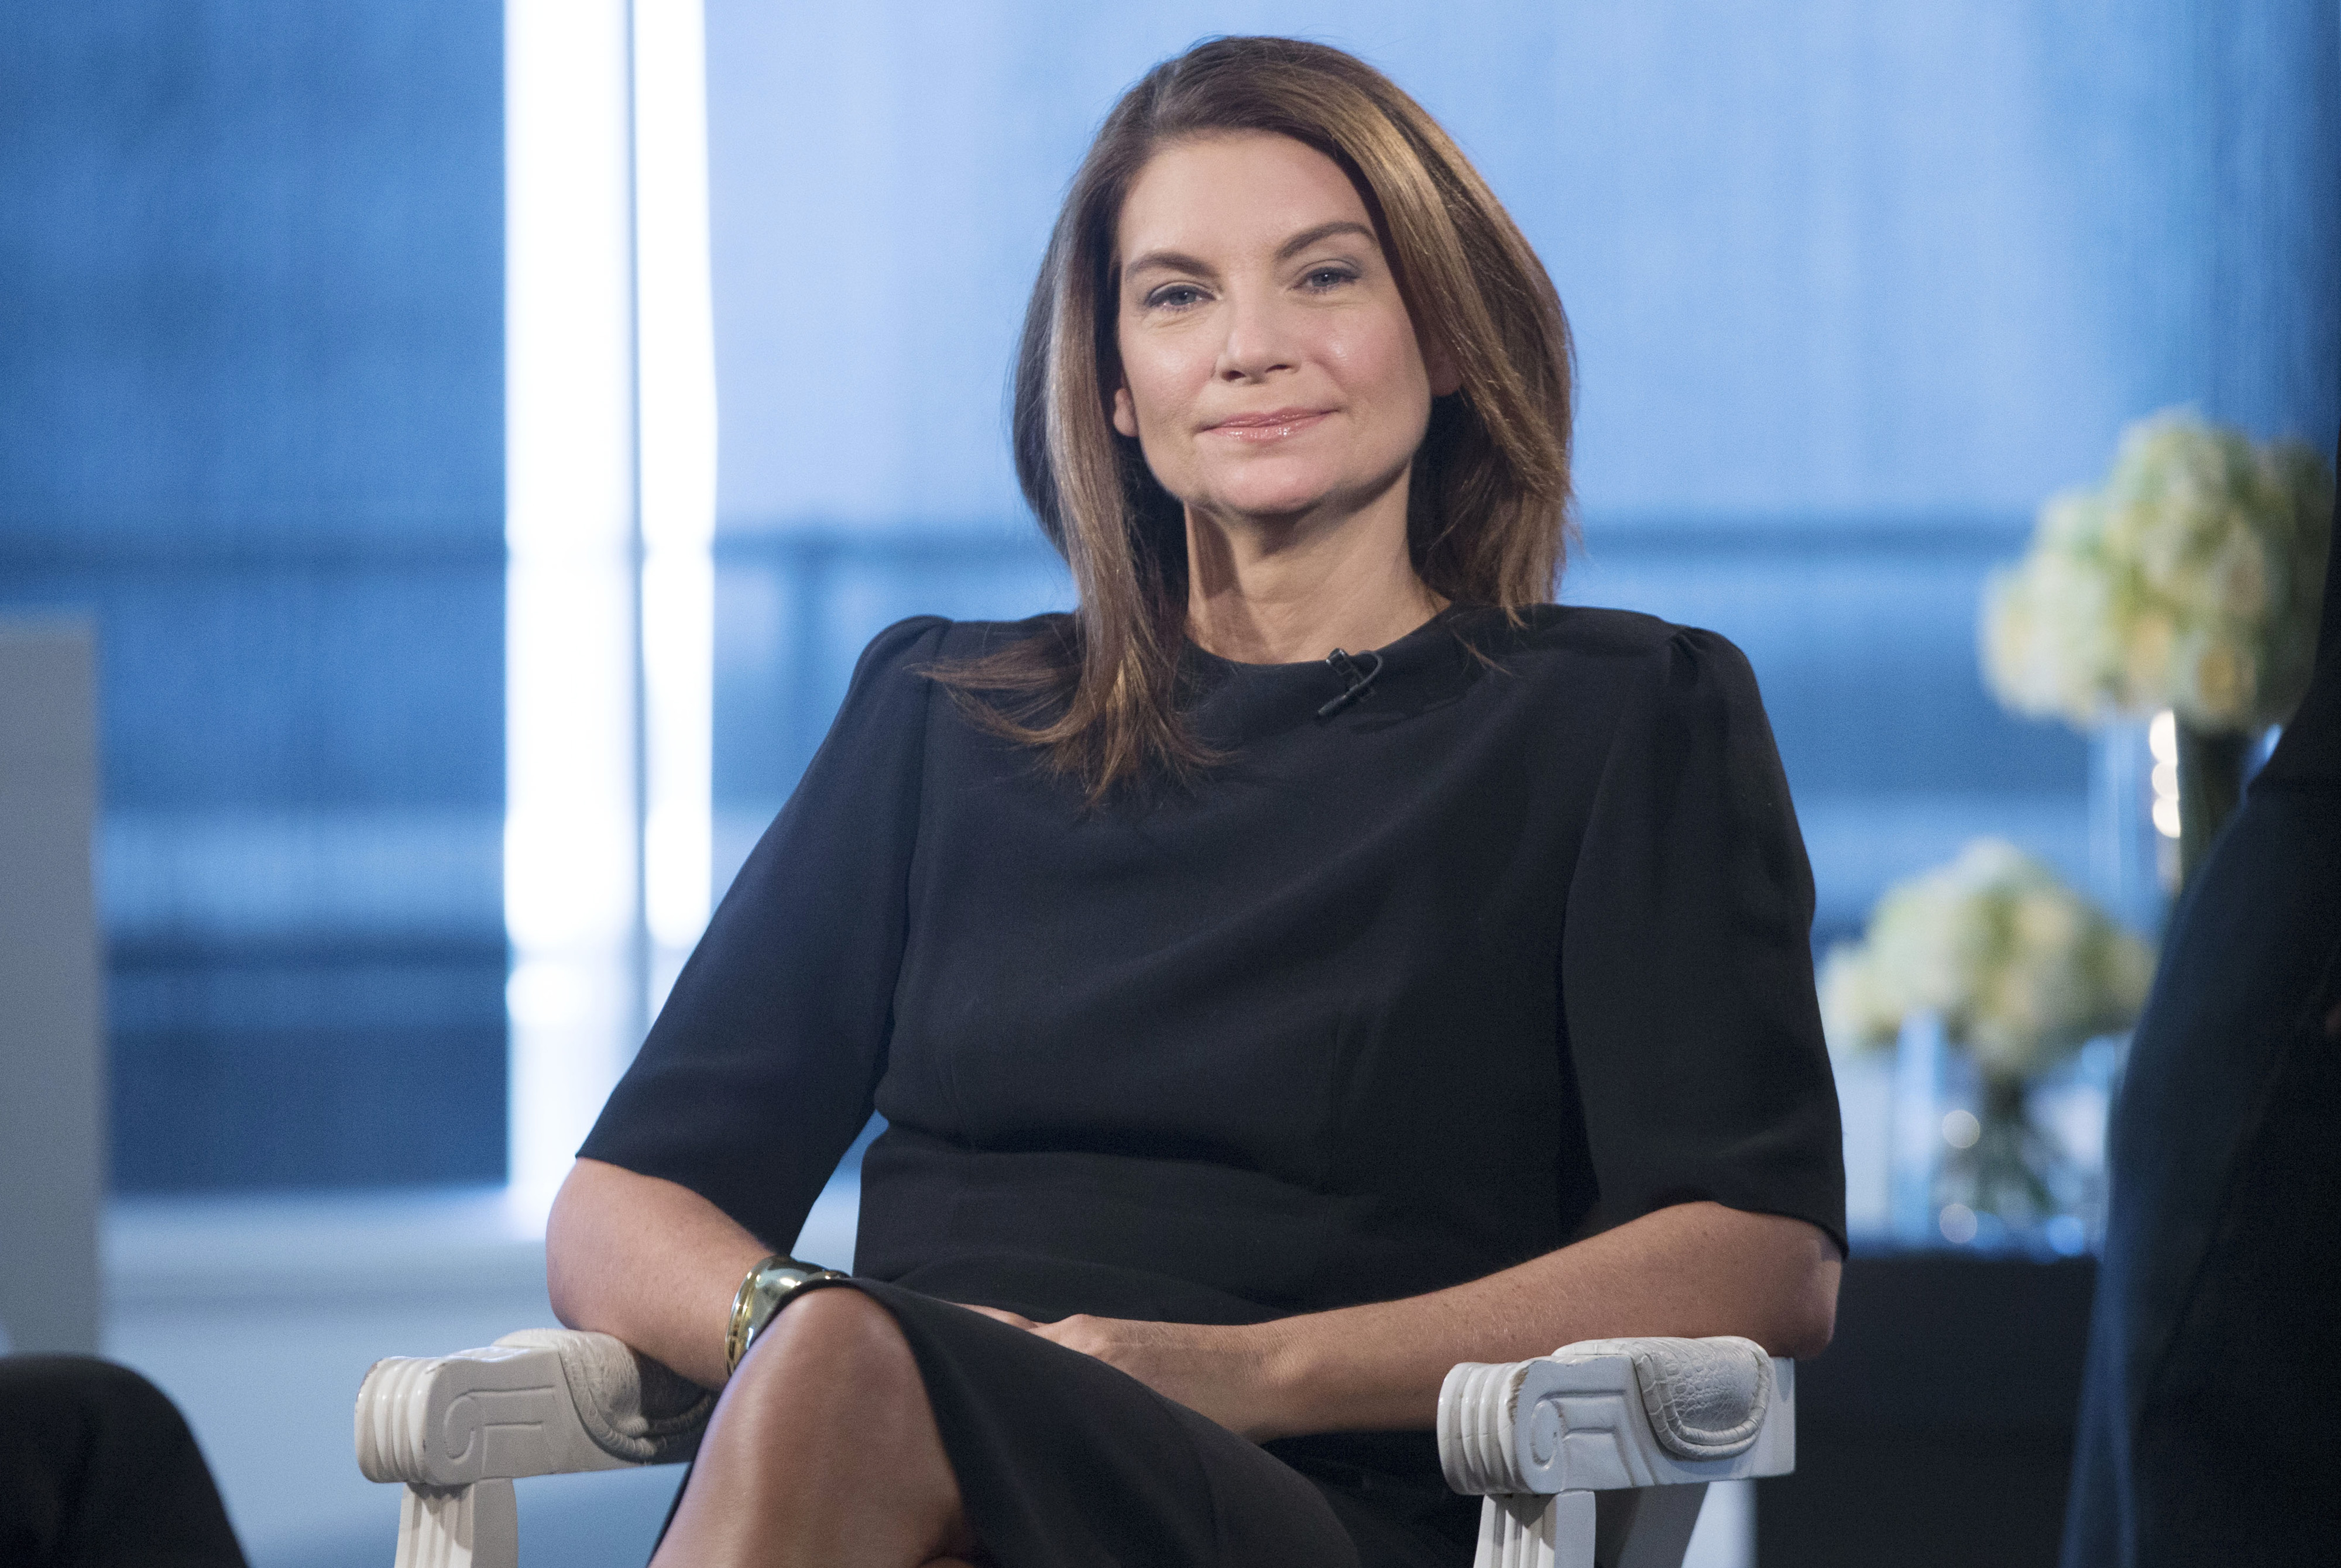 Natalie Massenet, founder and chairman of Net-A-Porter Ltd, pauses during an interview at the company's head office in London on June 18, 2015.